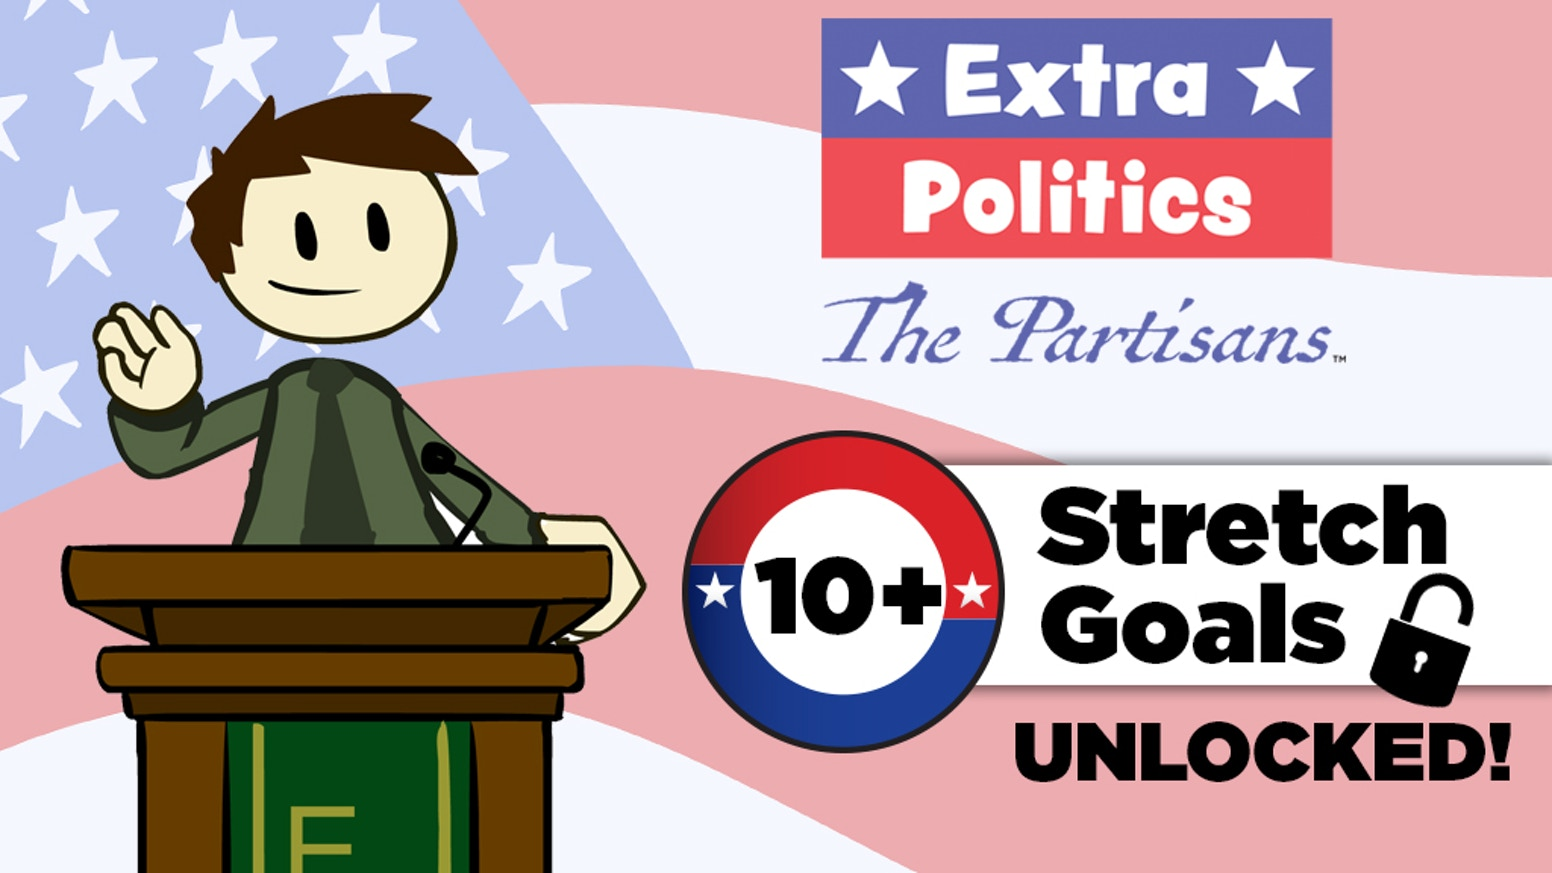 In The Partisans, multiple political ideologies battle for control. This game is based on the Extra Politics series by Extra Credits.